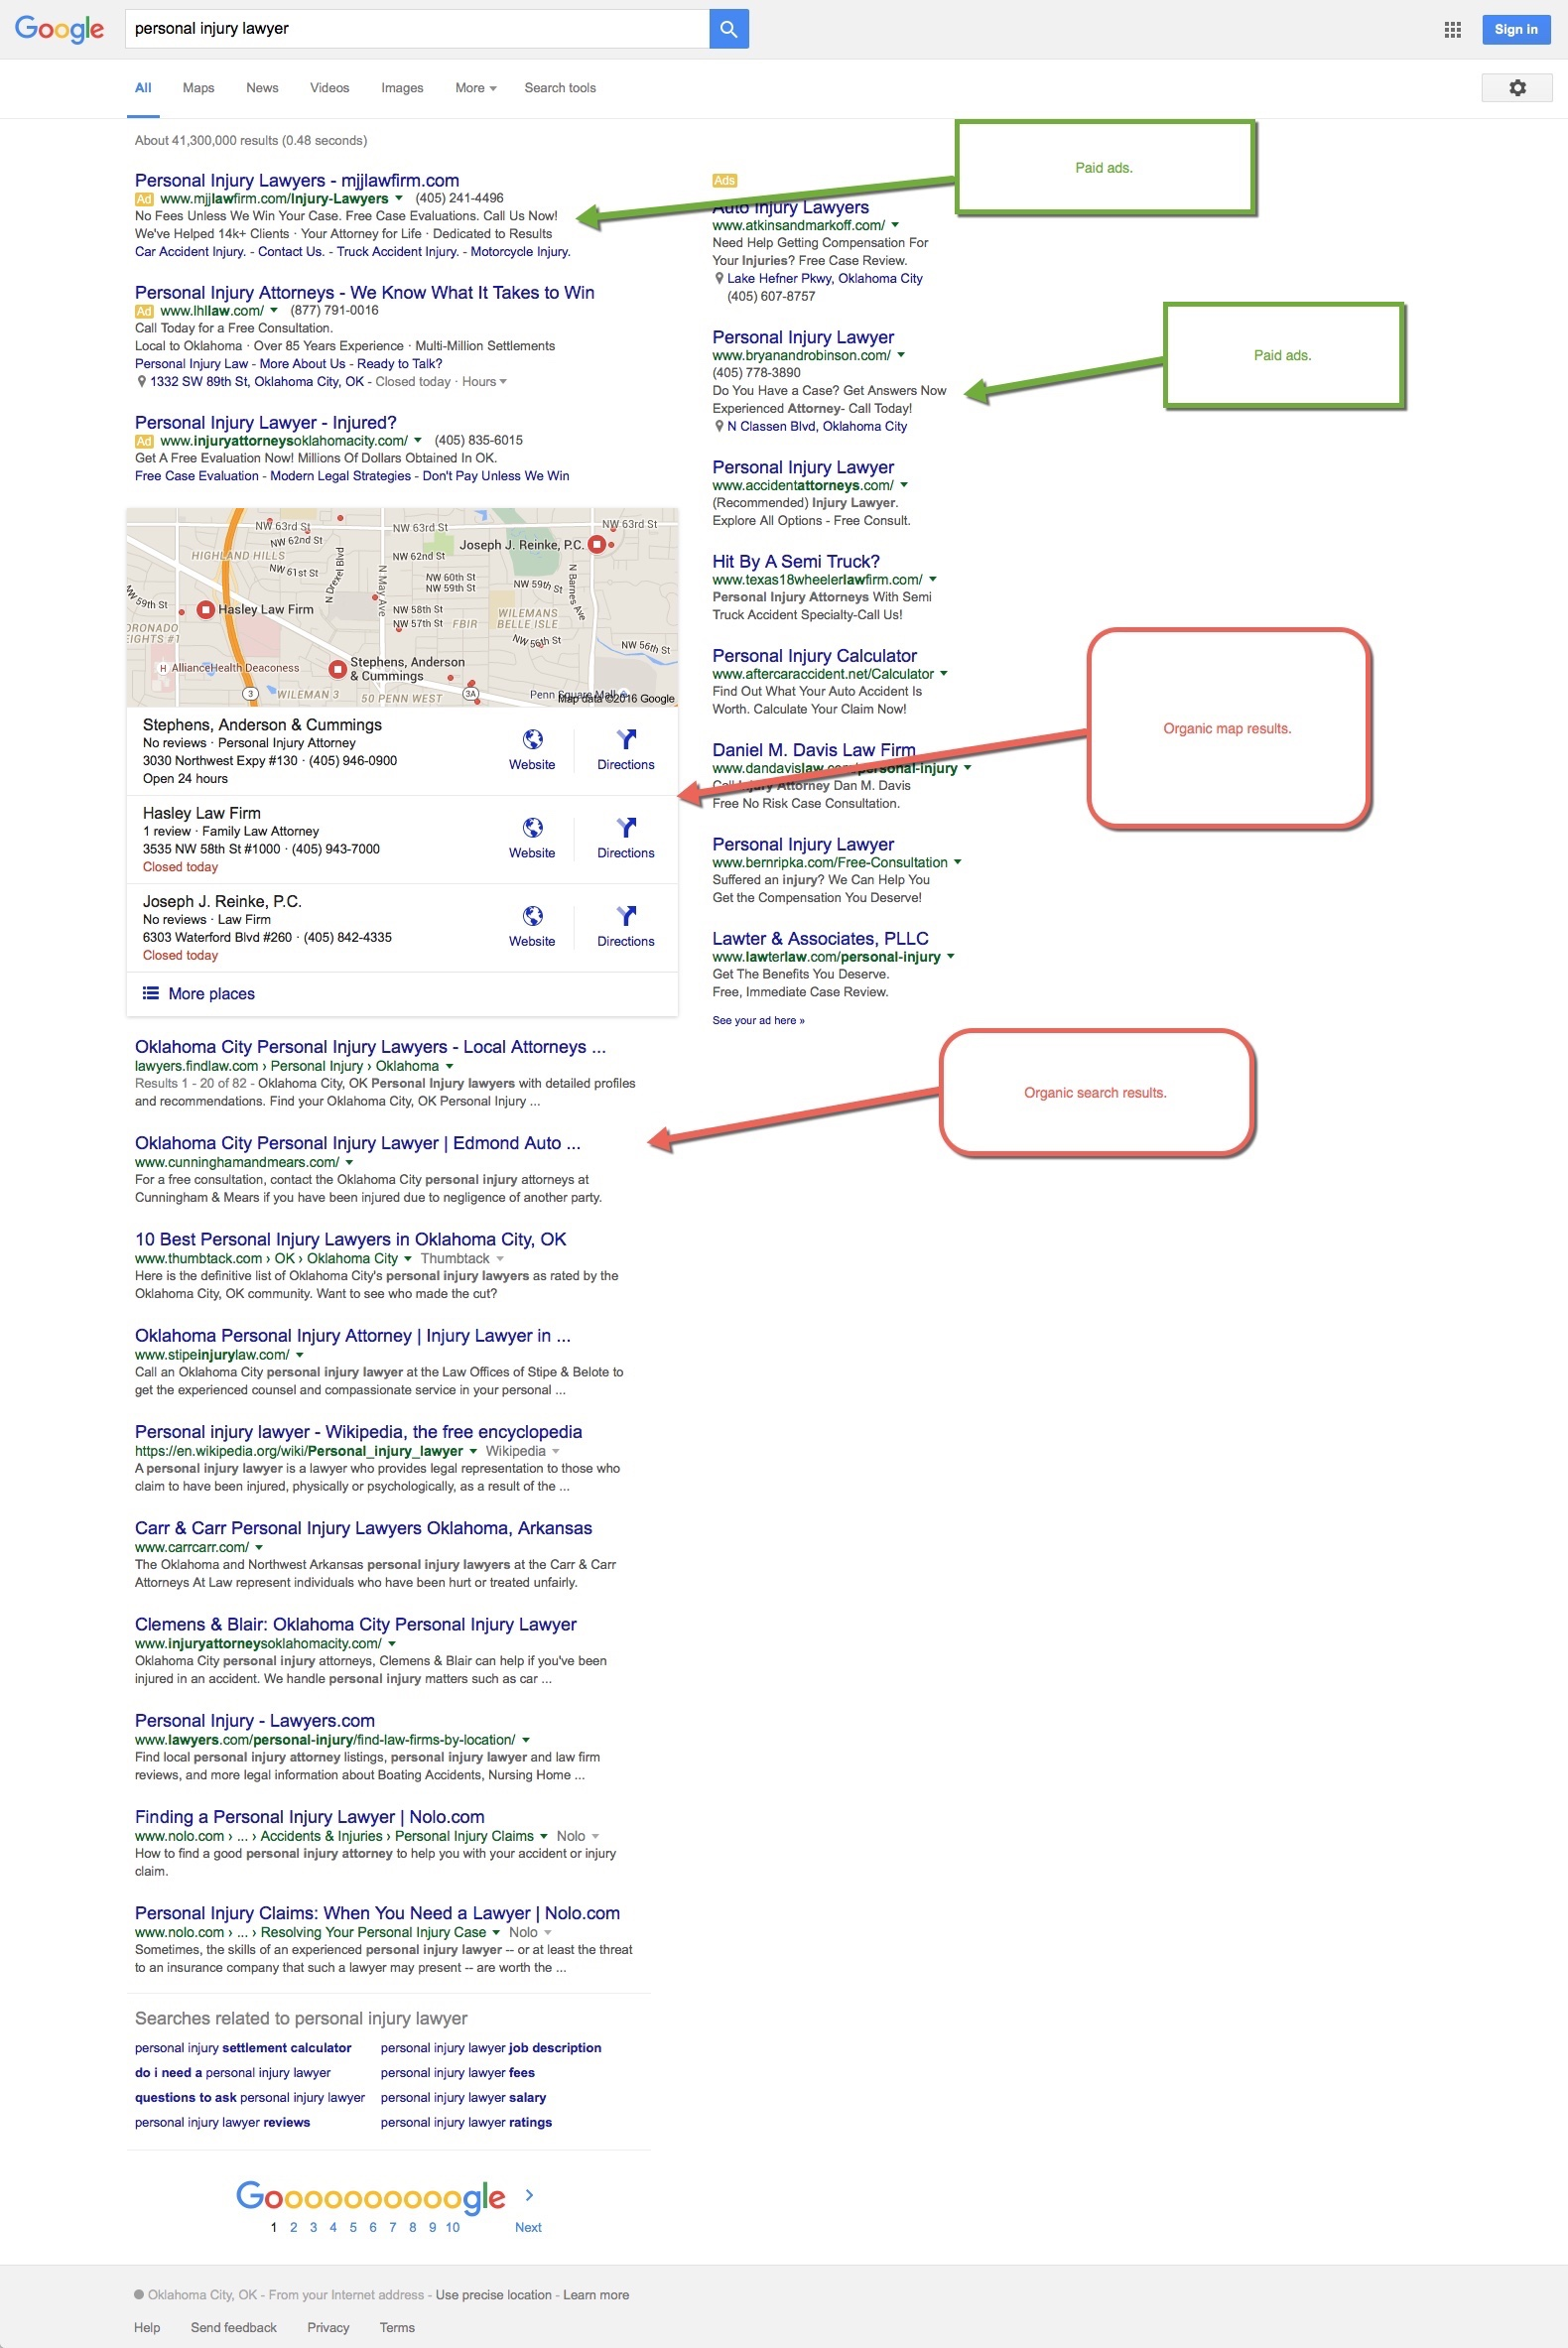 personal injury lawyer google results